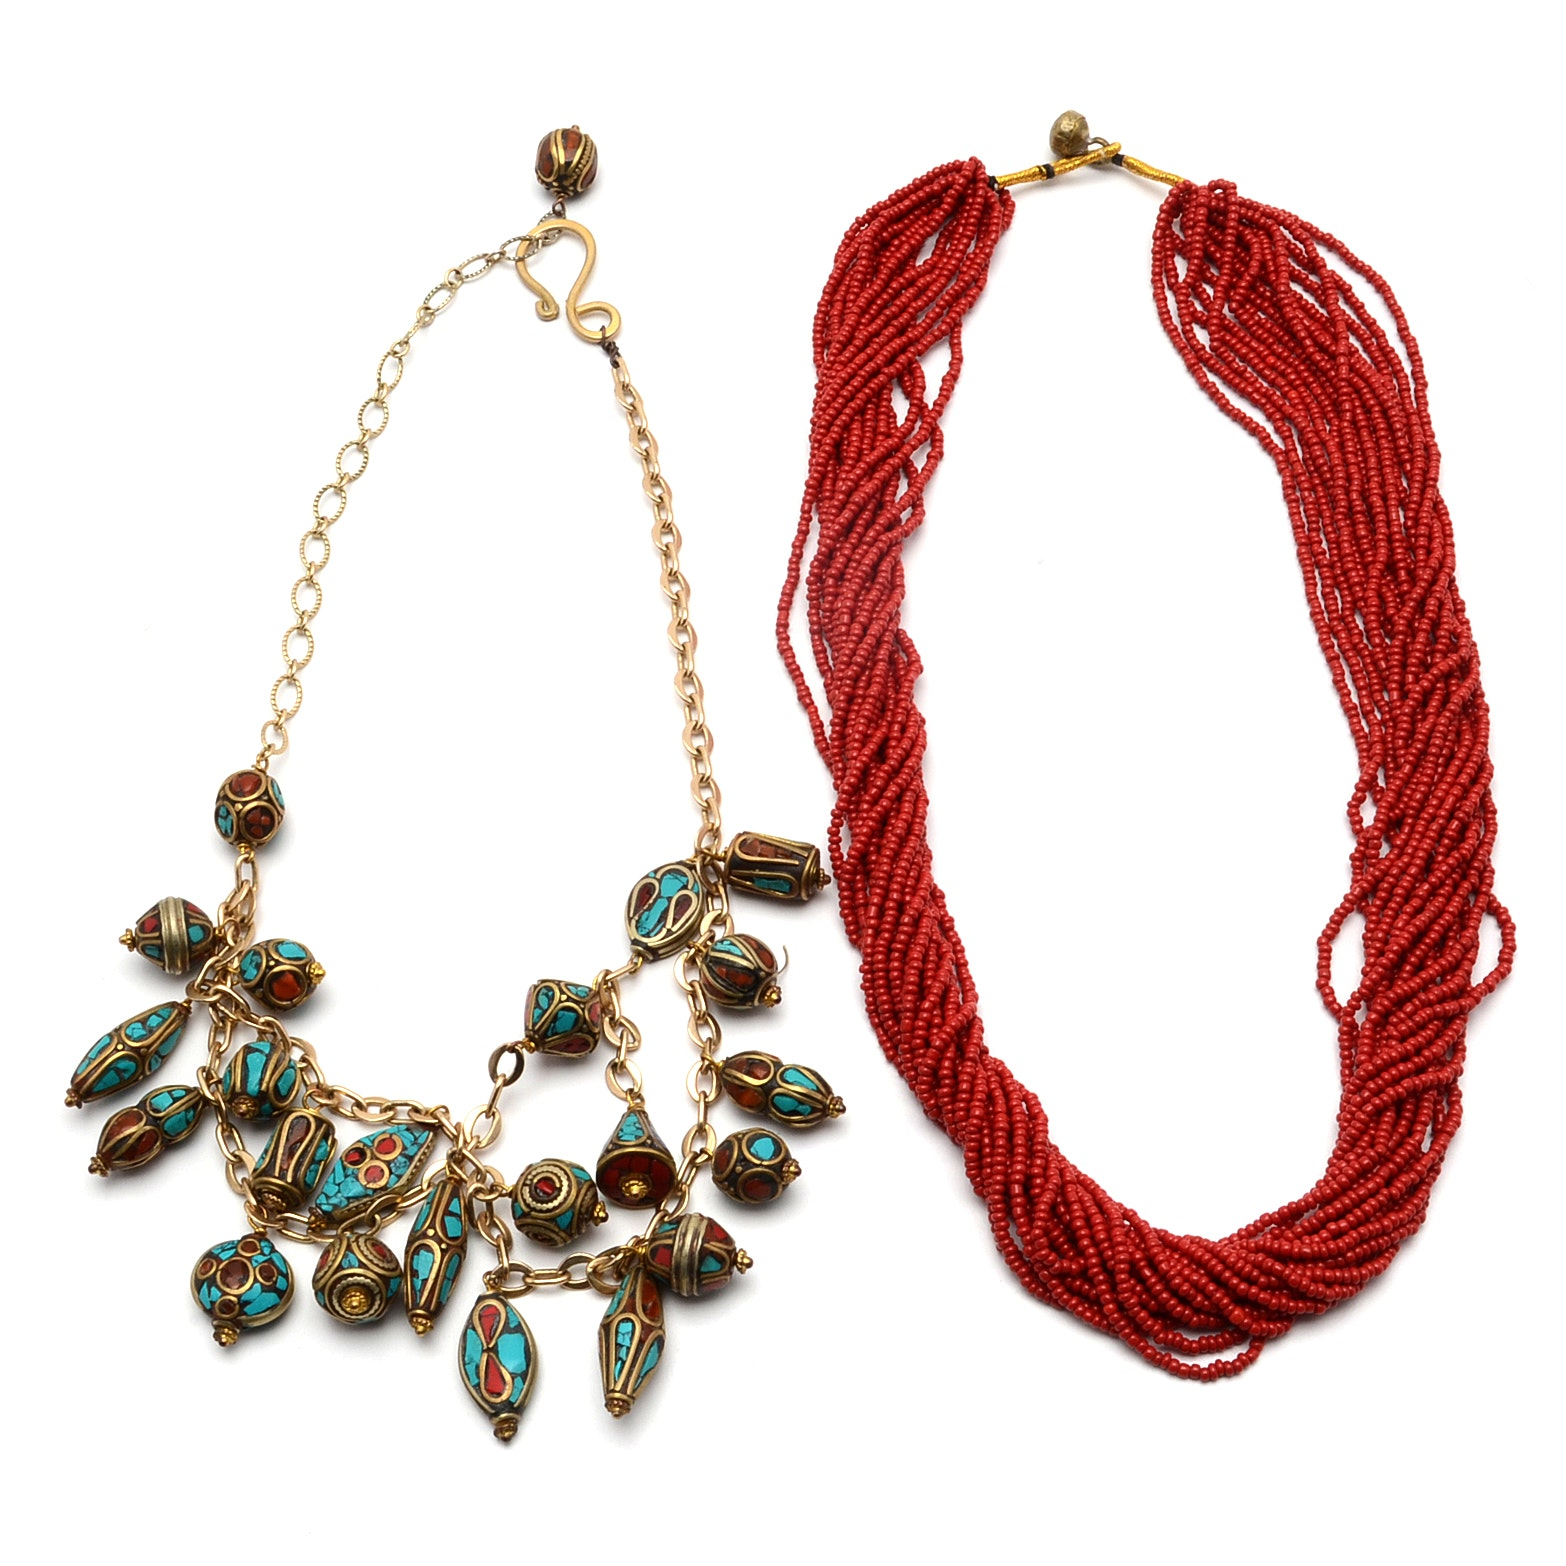 Tibetan Brass and Chip Inlay Bead Necklace and Multi-Strand Red Glass Necklace